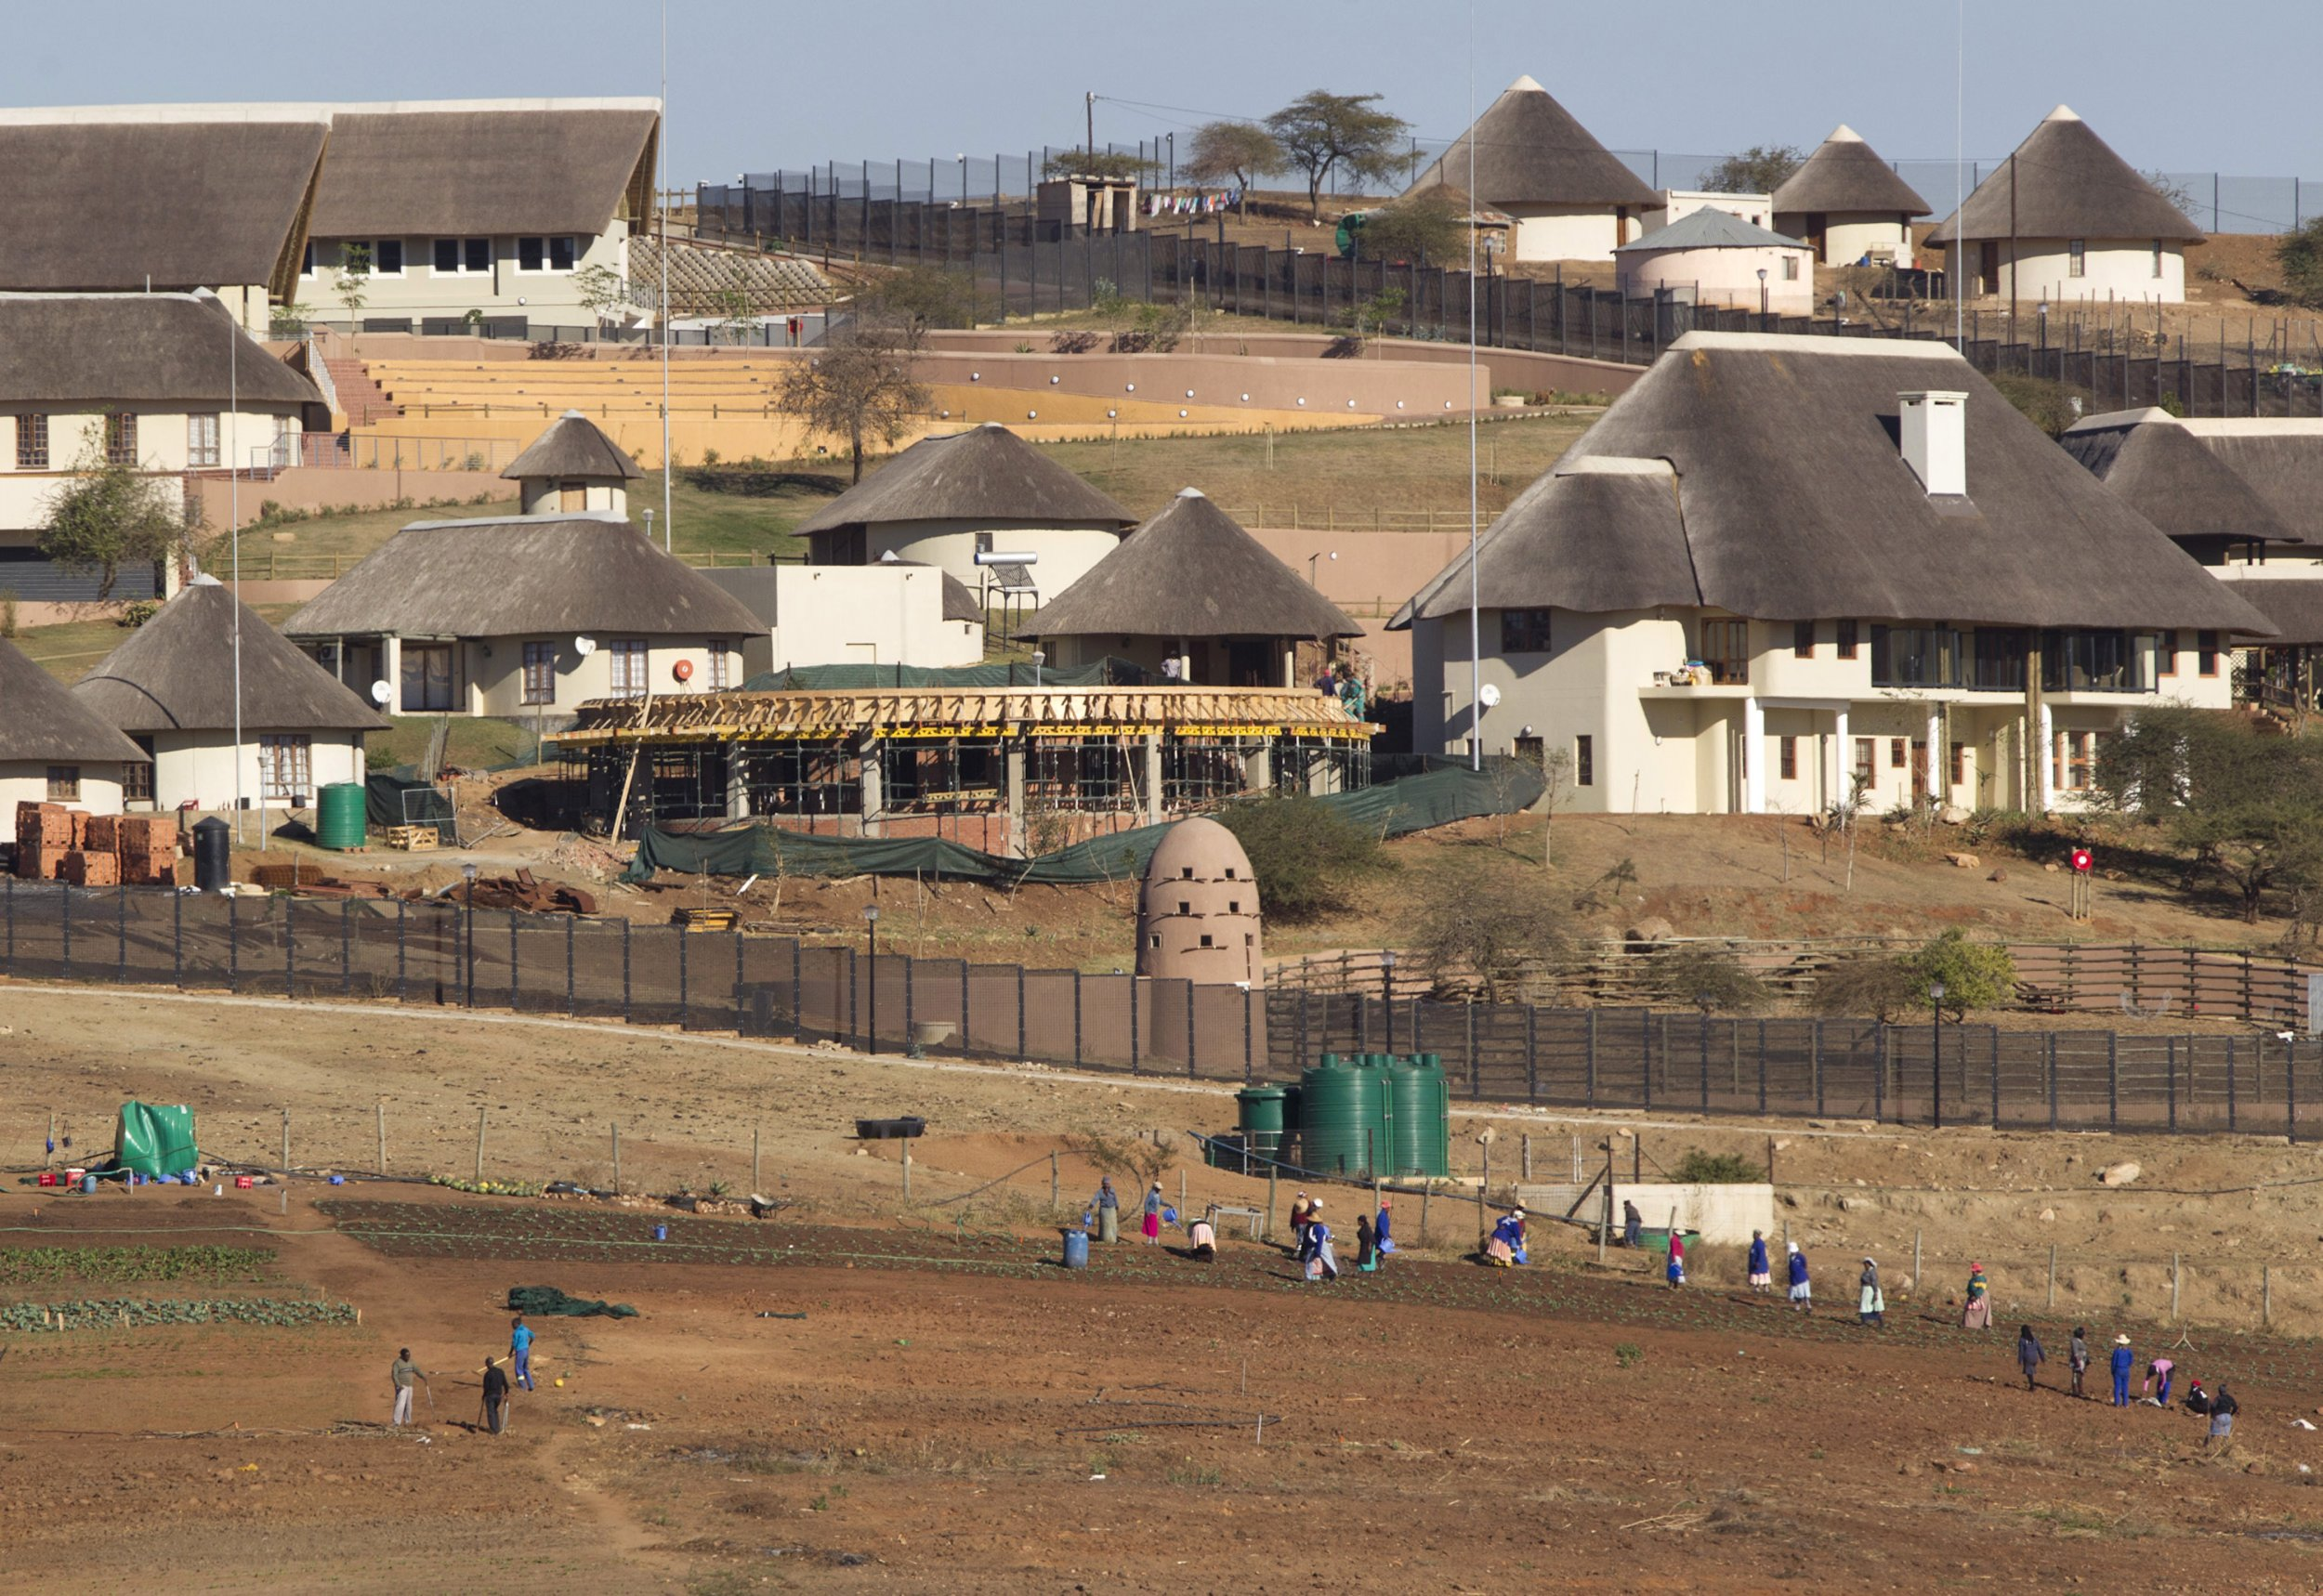 Jacob Zuma offers to pay in part for Nkandla improvements.